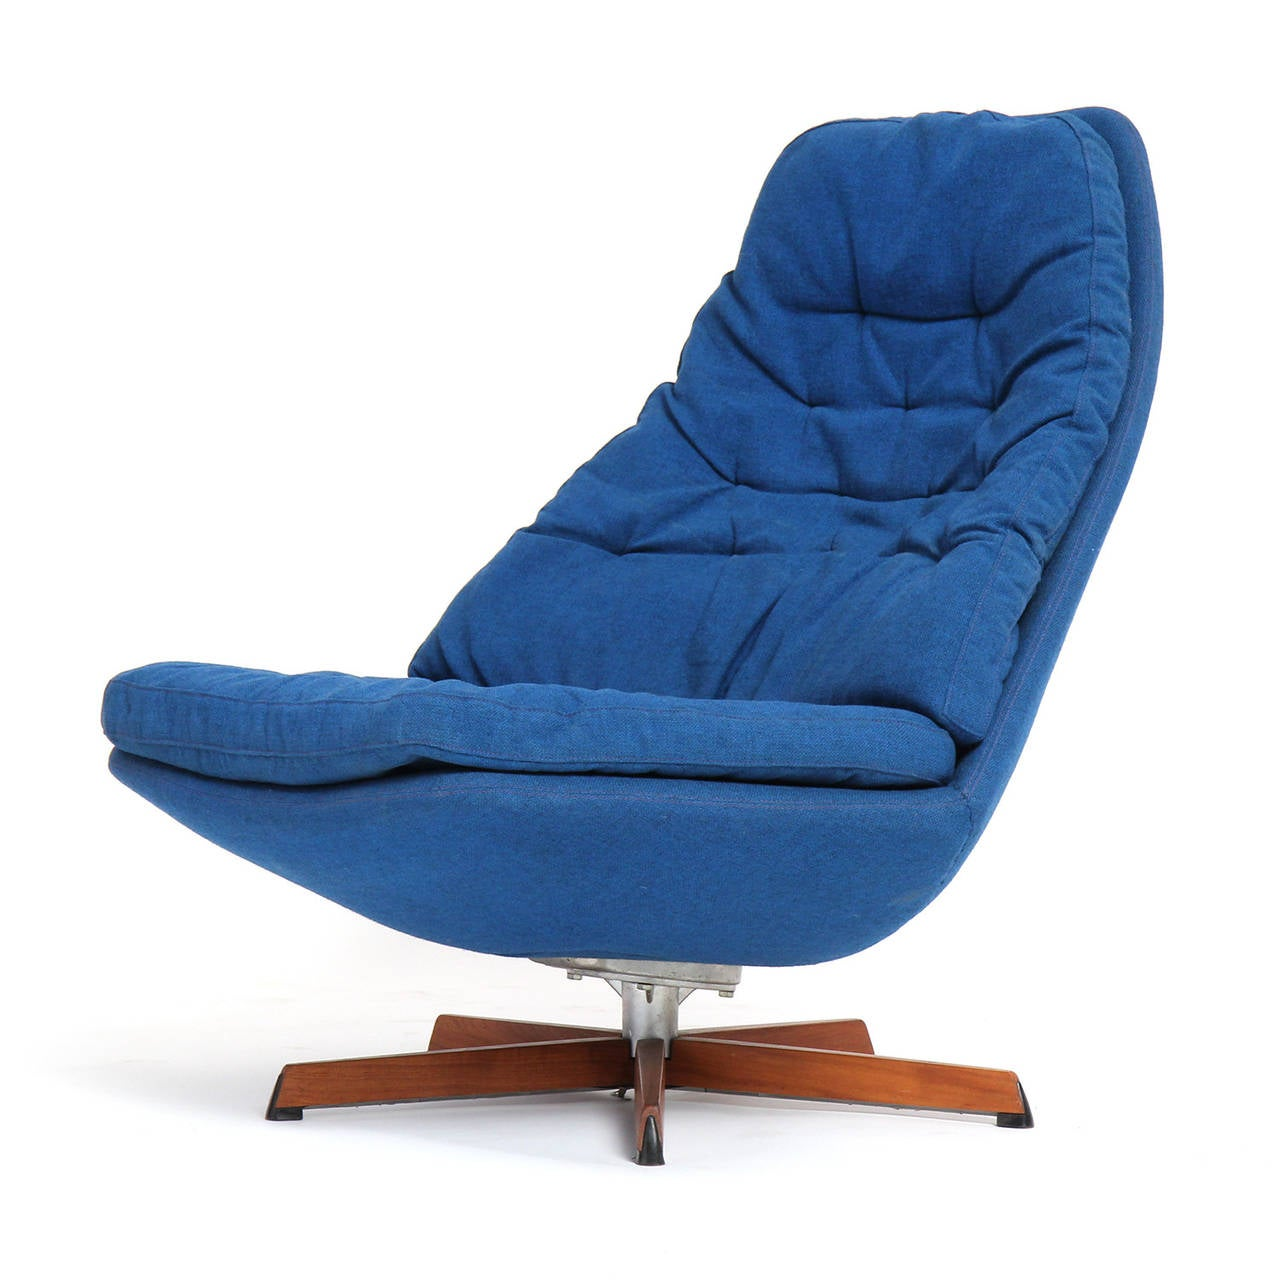 Swilveling Lounge Chair by Henry Klein For Sale at 1stdibs